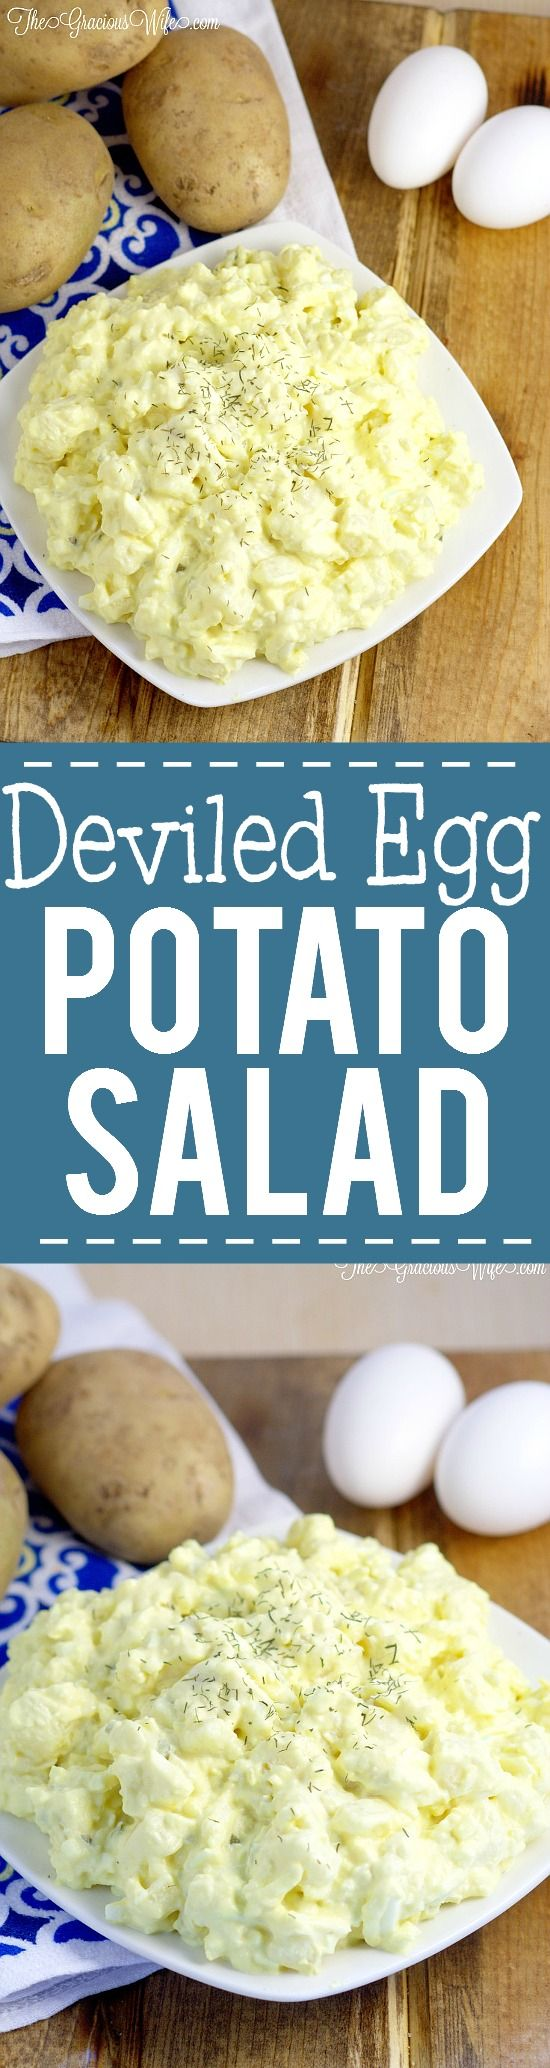 Deviled Egg Potato Salad Recipe - Easy potato salad recipe inspired by deviled eggs. Perfect side dish potato salad for barbecues, picnics, and cookouts.